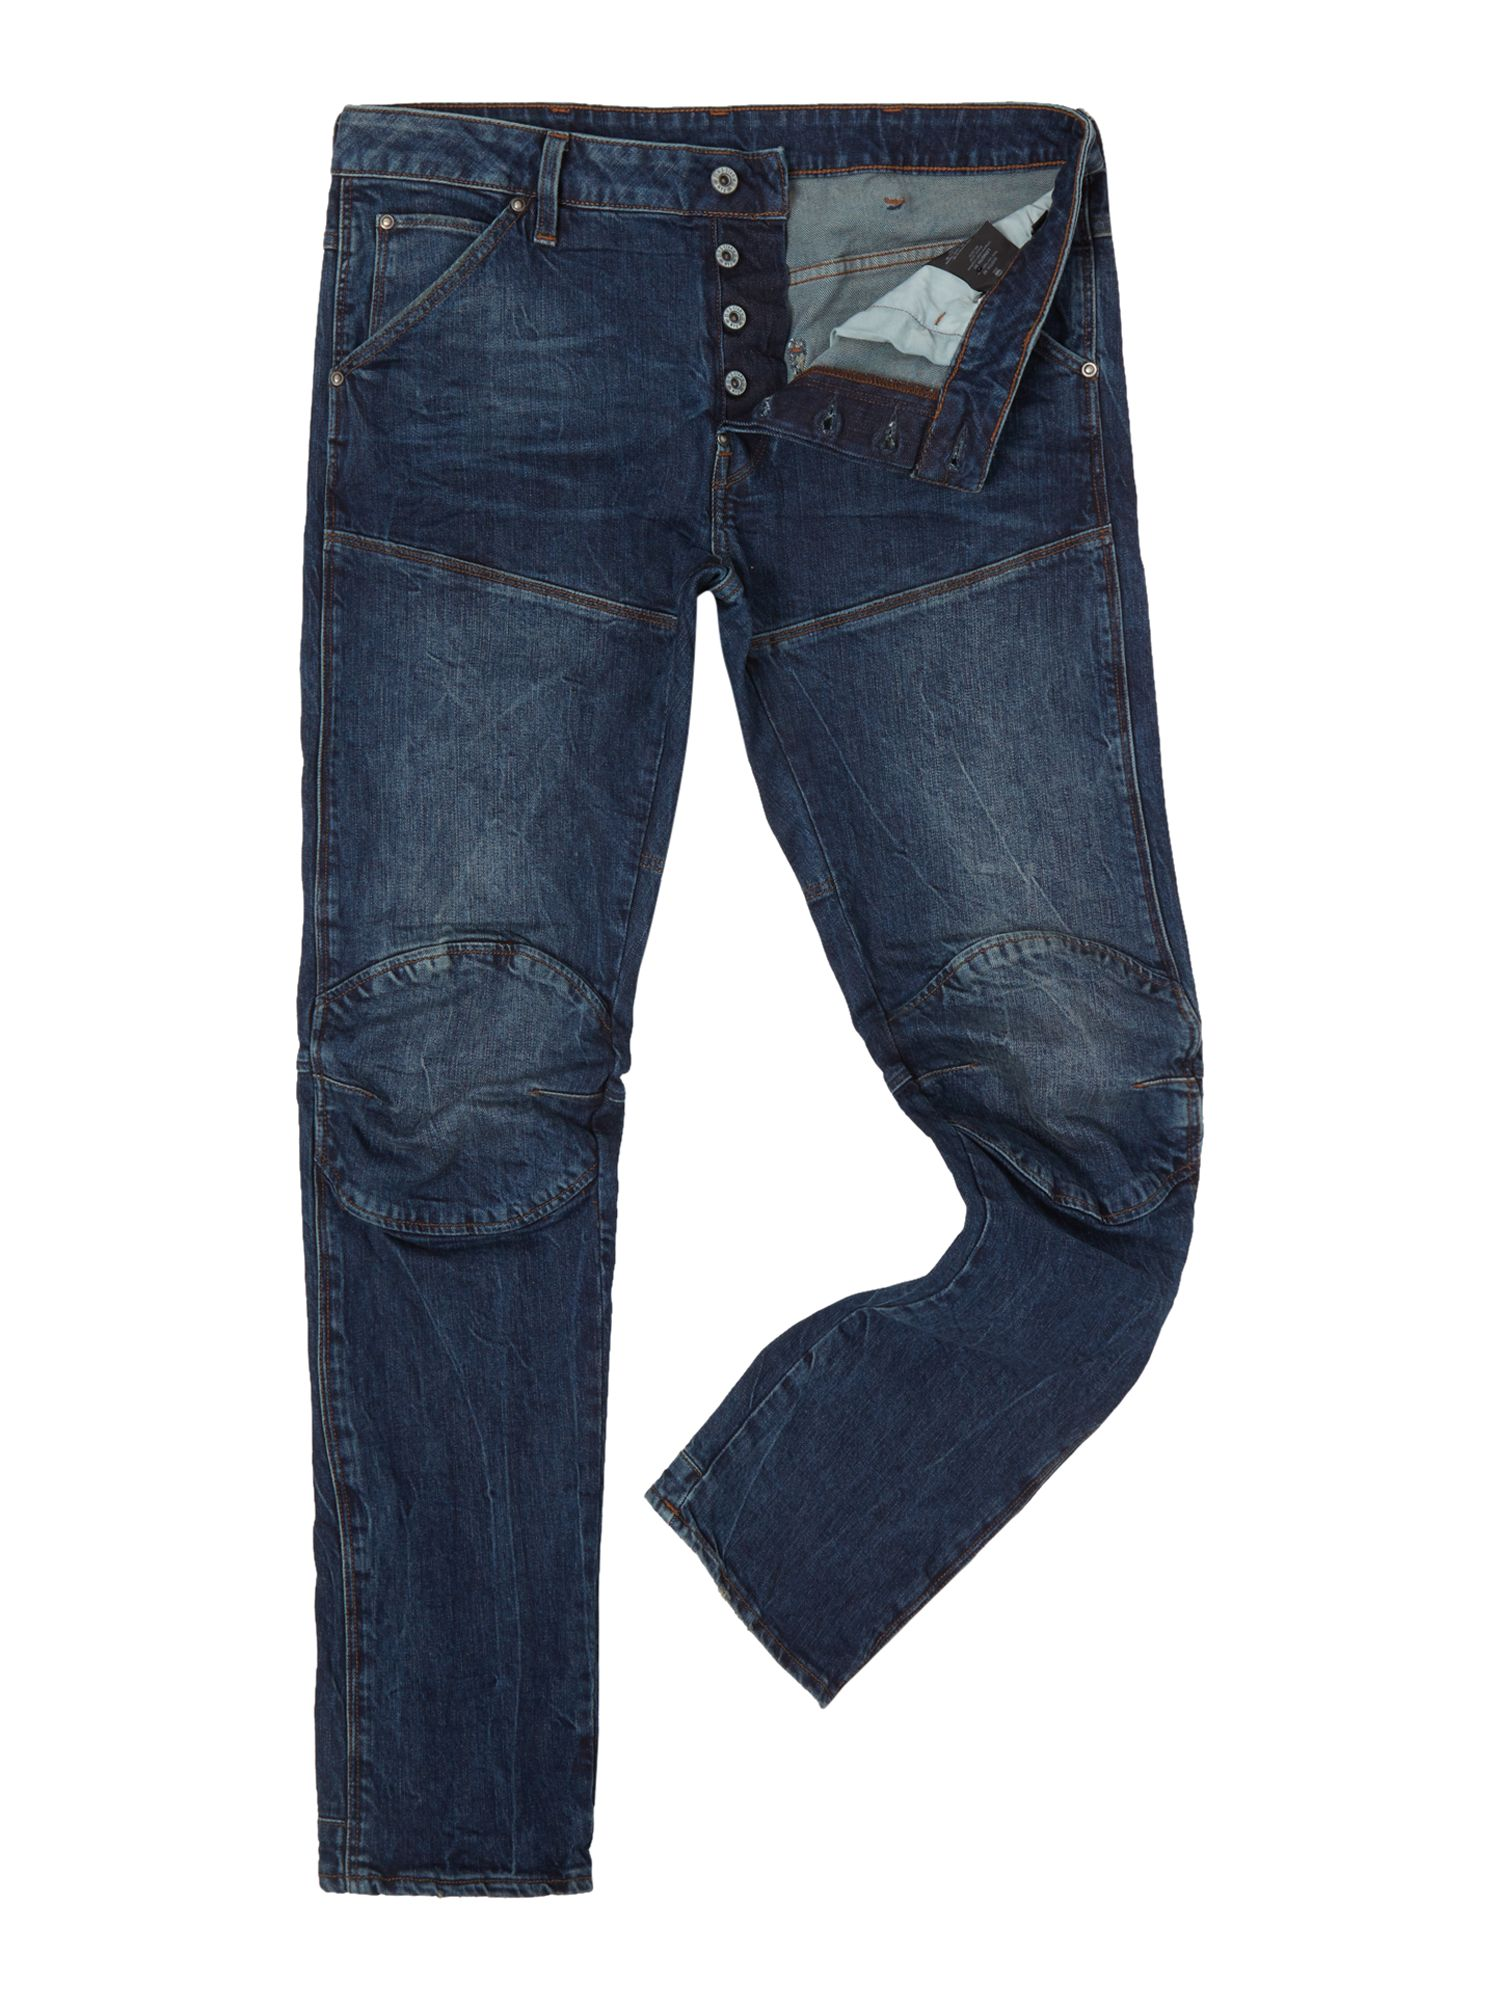 Mens G-star 5620 3d Slim Dark Aged Hadron Stretch Jeans, Denim Dark Wash